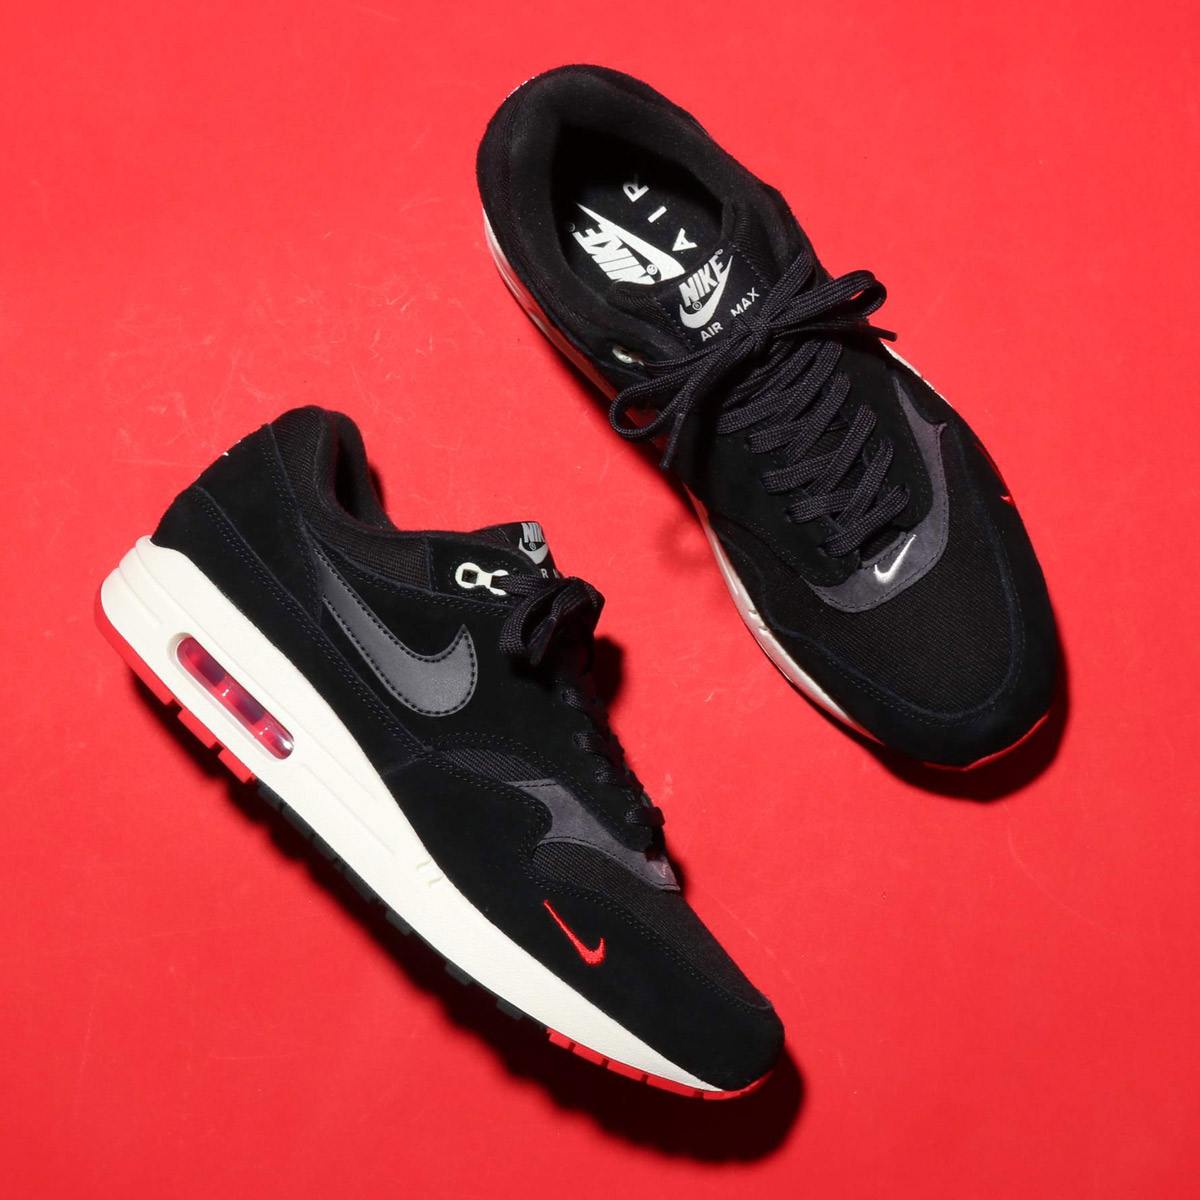 size 40 d14d2 26cbc NIKE AIR MAX 1 PREMIUM (Kie Ney AMAX 1 premium) BLACK OIL GREY-UNIVERSITY  RED-SAIL 18FA-I